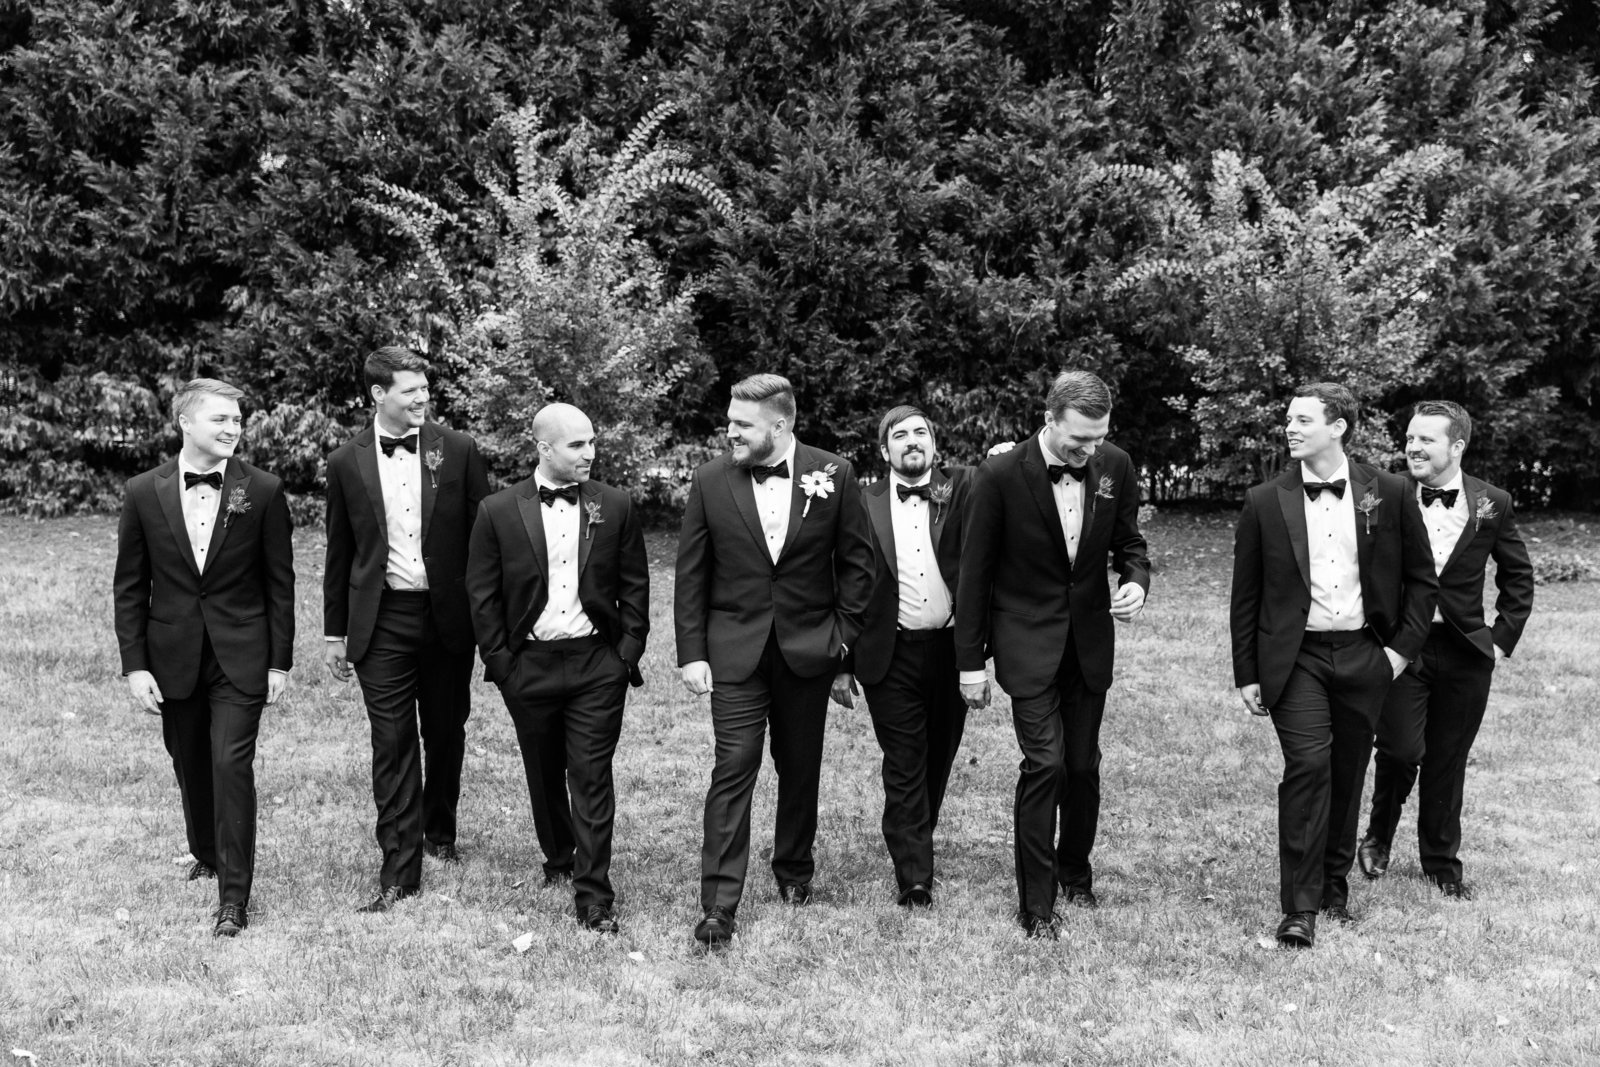 Ian and Katie Married-Wedding Party-Samantha Laffoon Photography-67